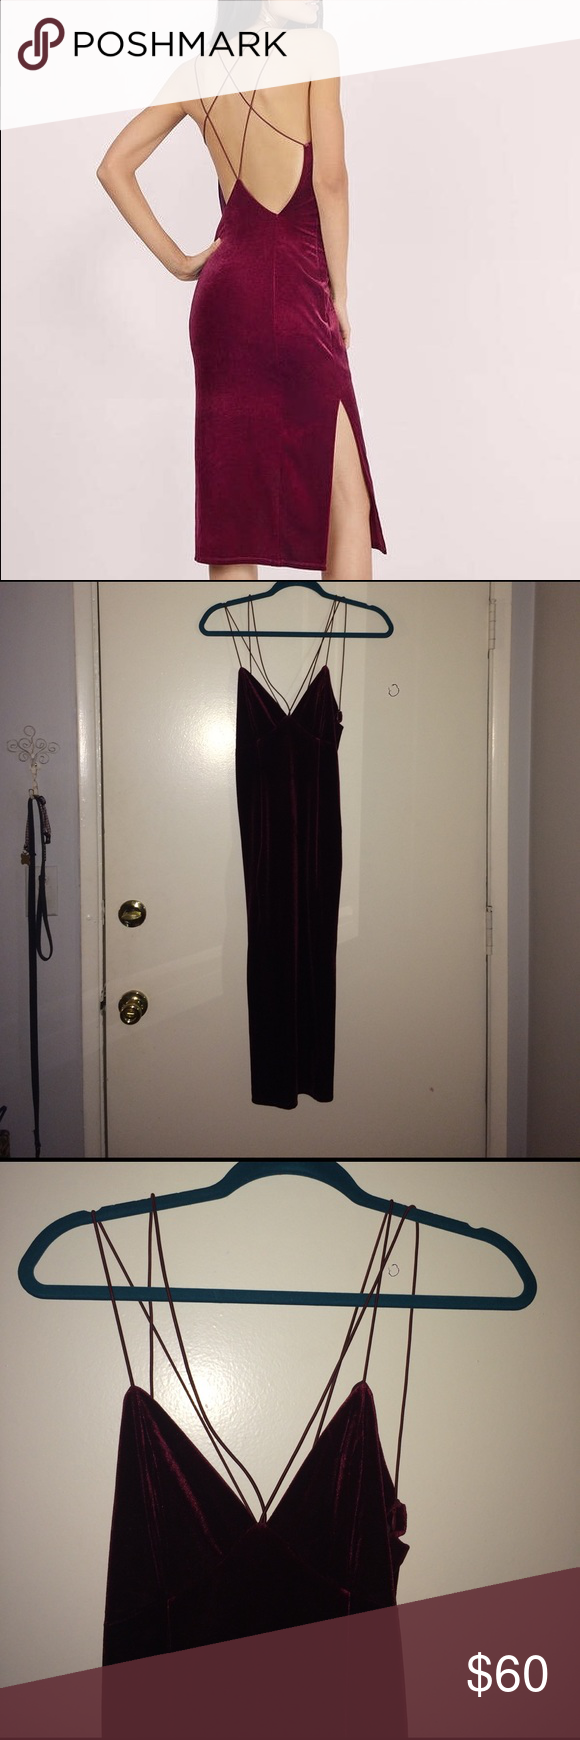 Sexy Red Velvet Dress Super cute! Double strap red velvet dress! Only tried on never worn!  Just haven't had anything to wear it too! Tobi Dresses Midi